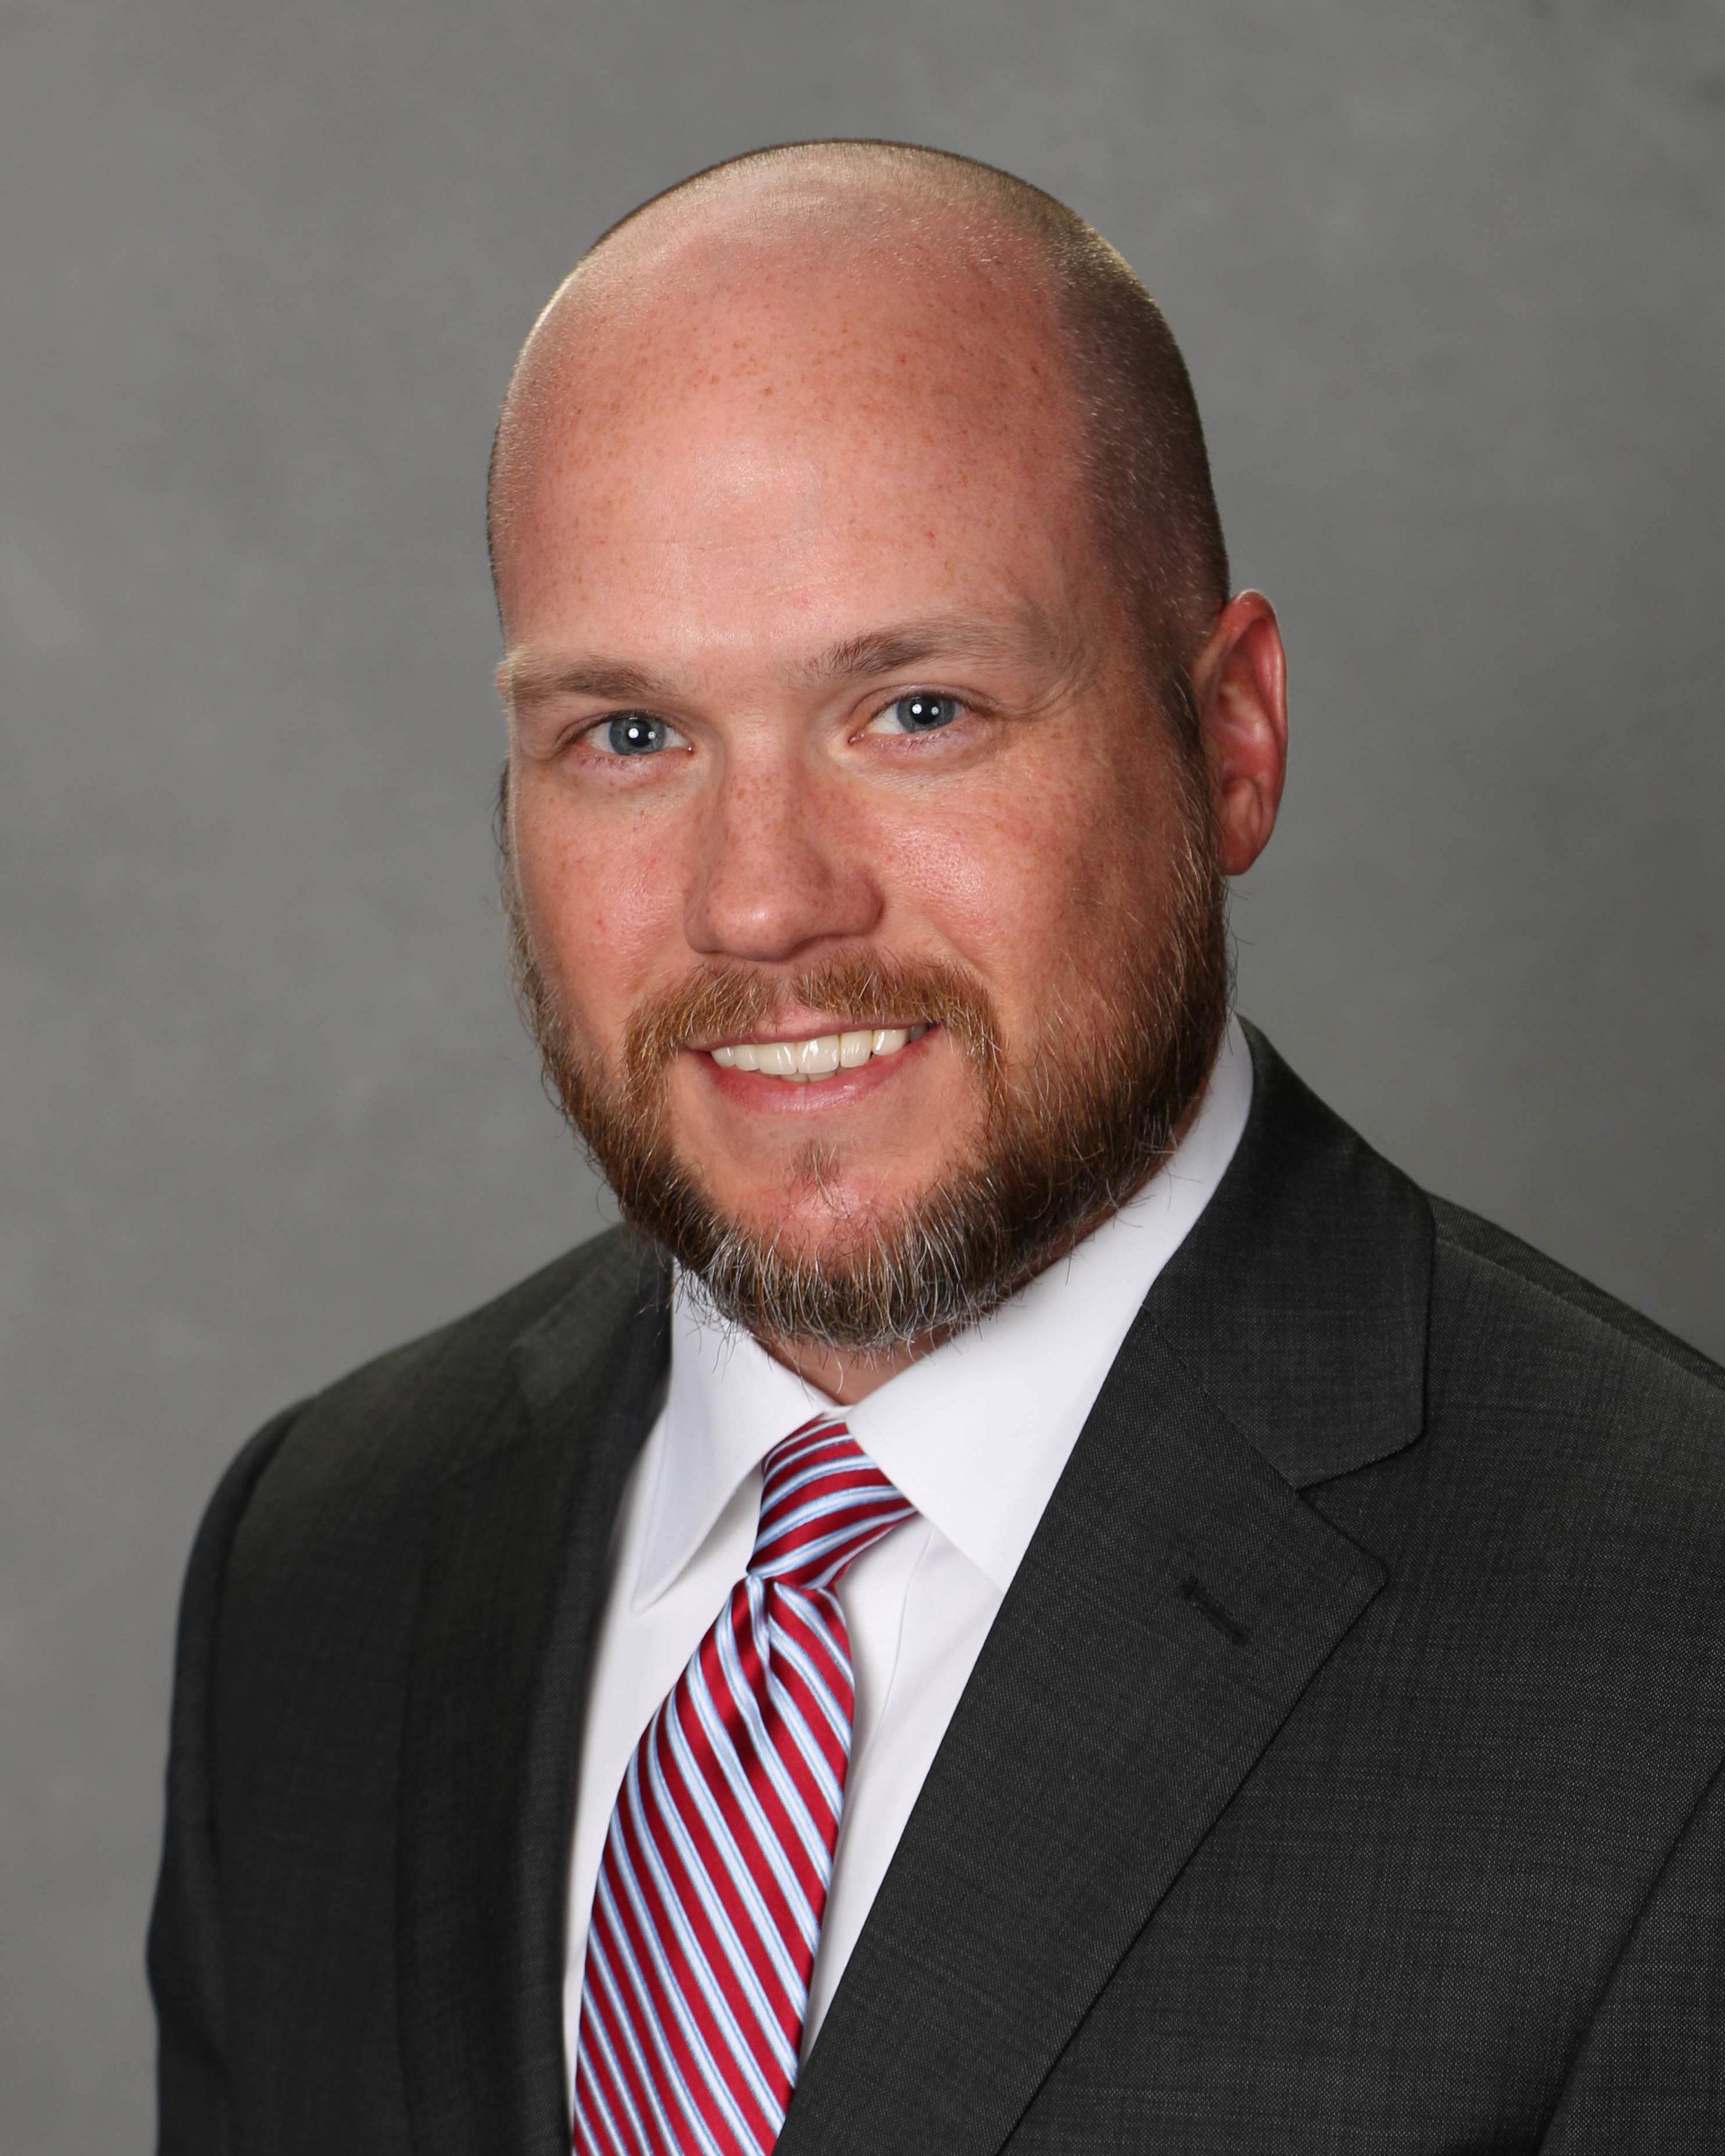 Levi Ponder – Vice President of Lending, Commercial National Bank